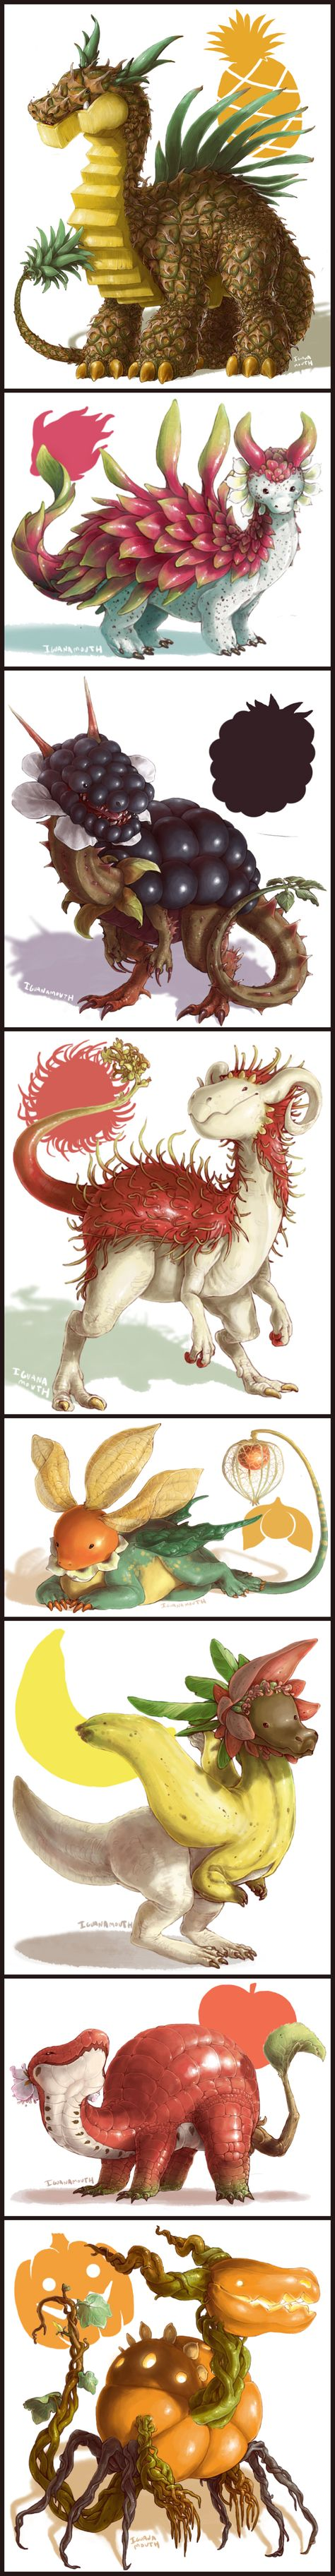 IGUANAMOUTH -- Fruit dragons. http://lizardshuffle.tumblr.com/post/129794410774/iguanamouth-fruit-dragons-click-through-to